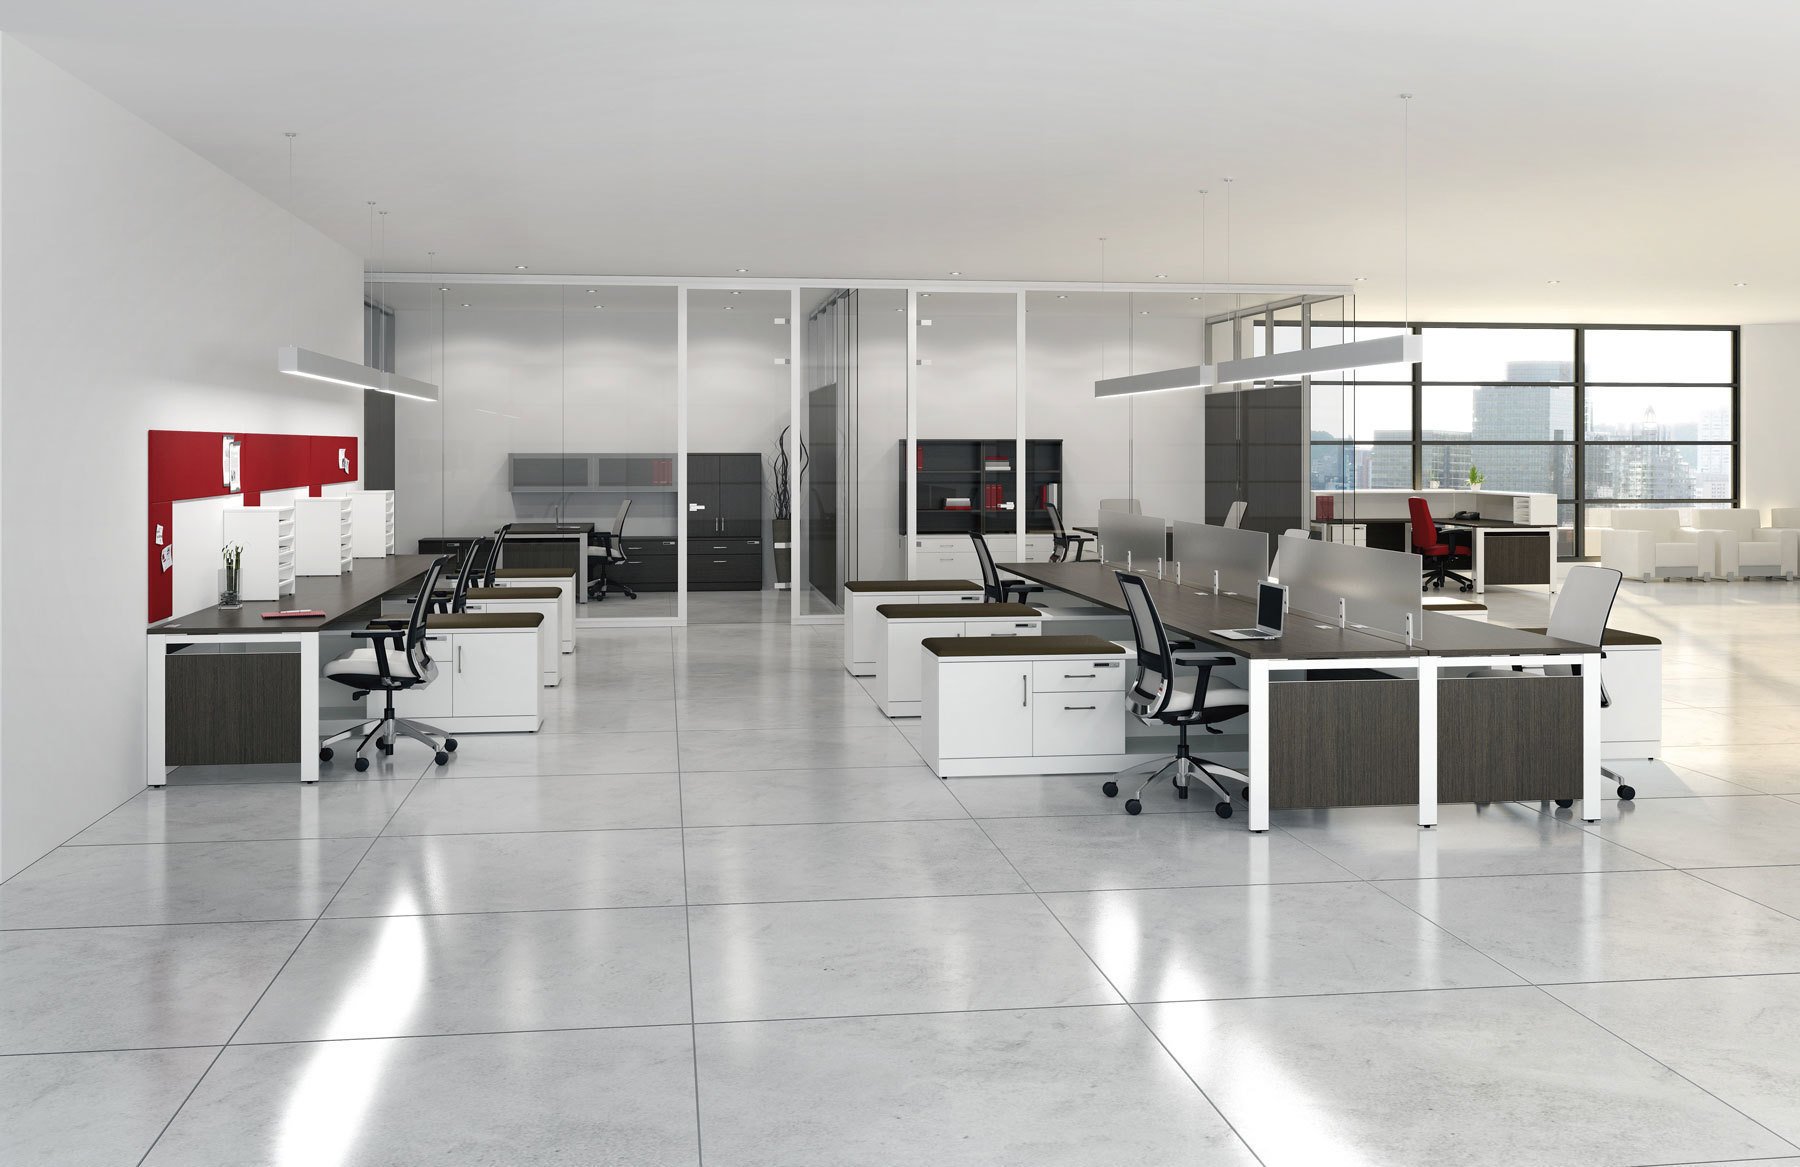 Toronto office furniture office interior design for Interior office design ideas photos layout